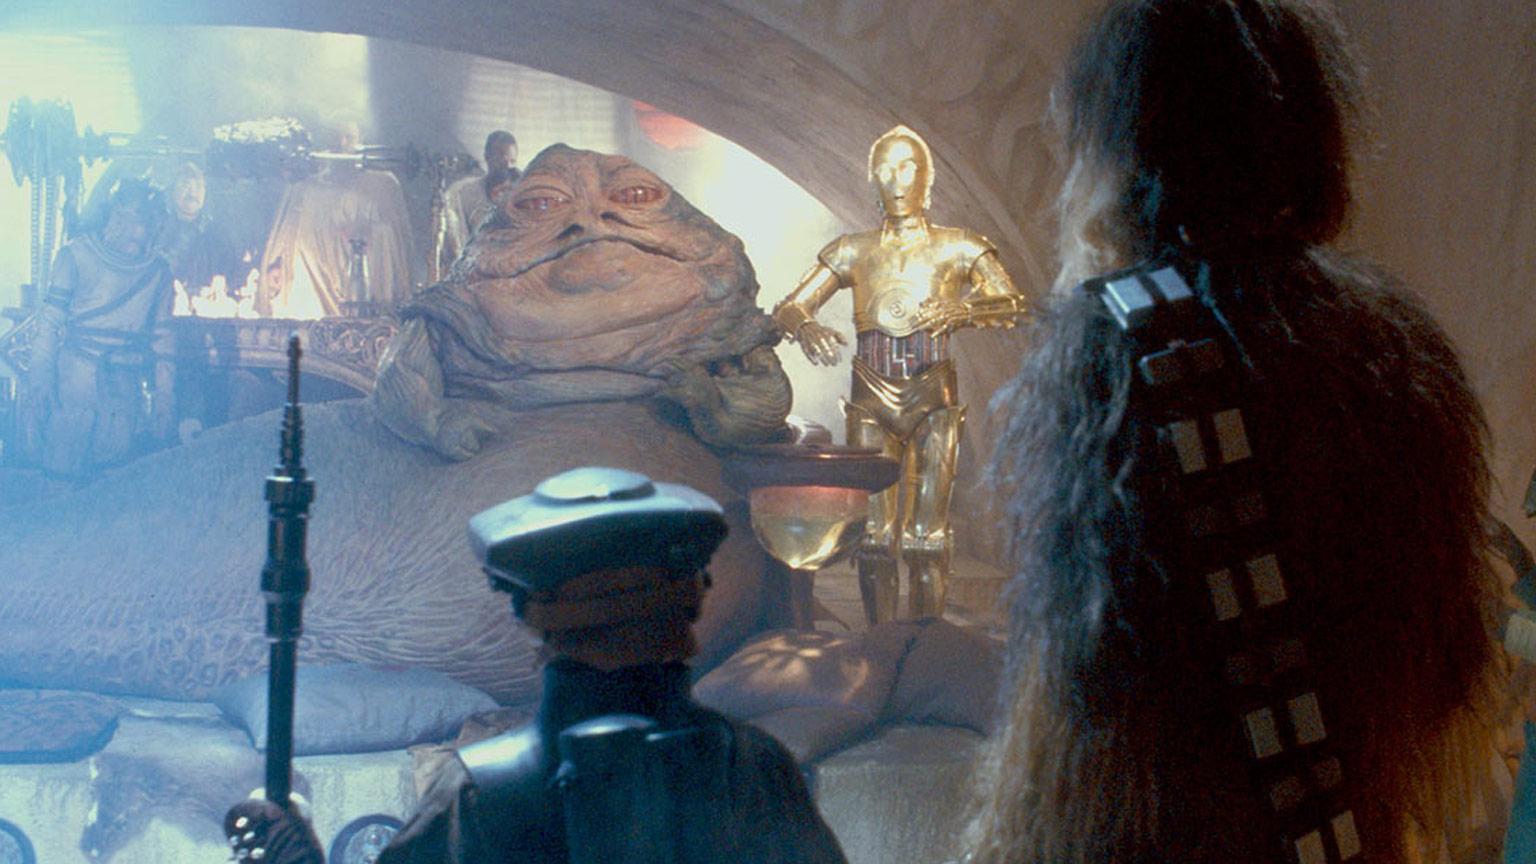 Last Shot Author Daniel Jose Older On Why Jabba S Palace Is His Favorite Star Wars Scene